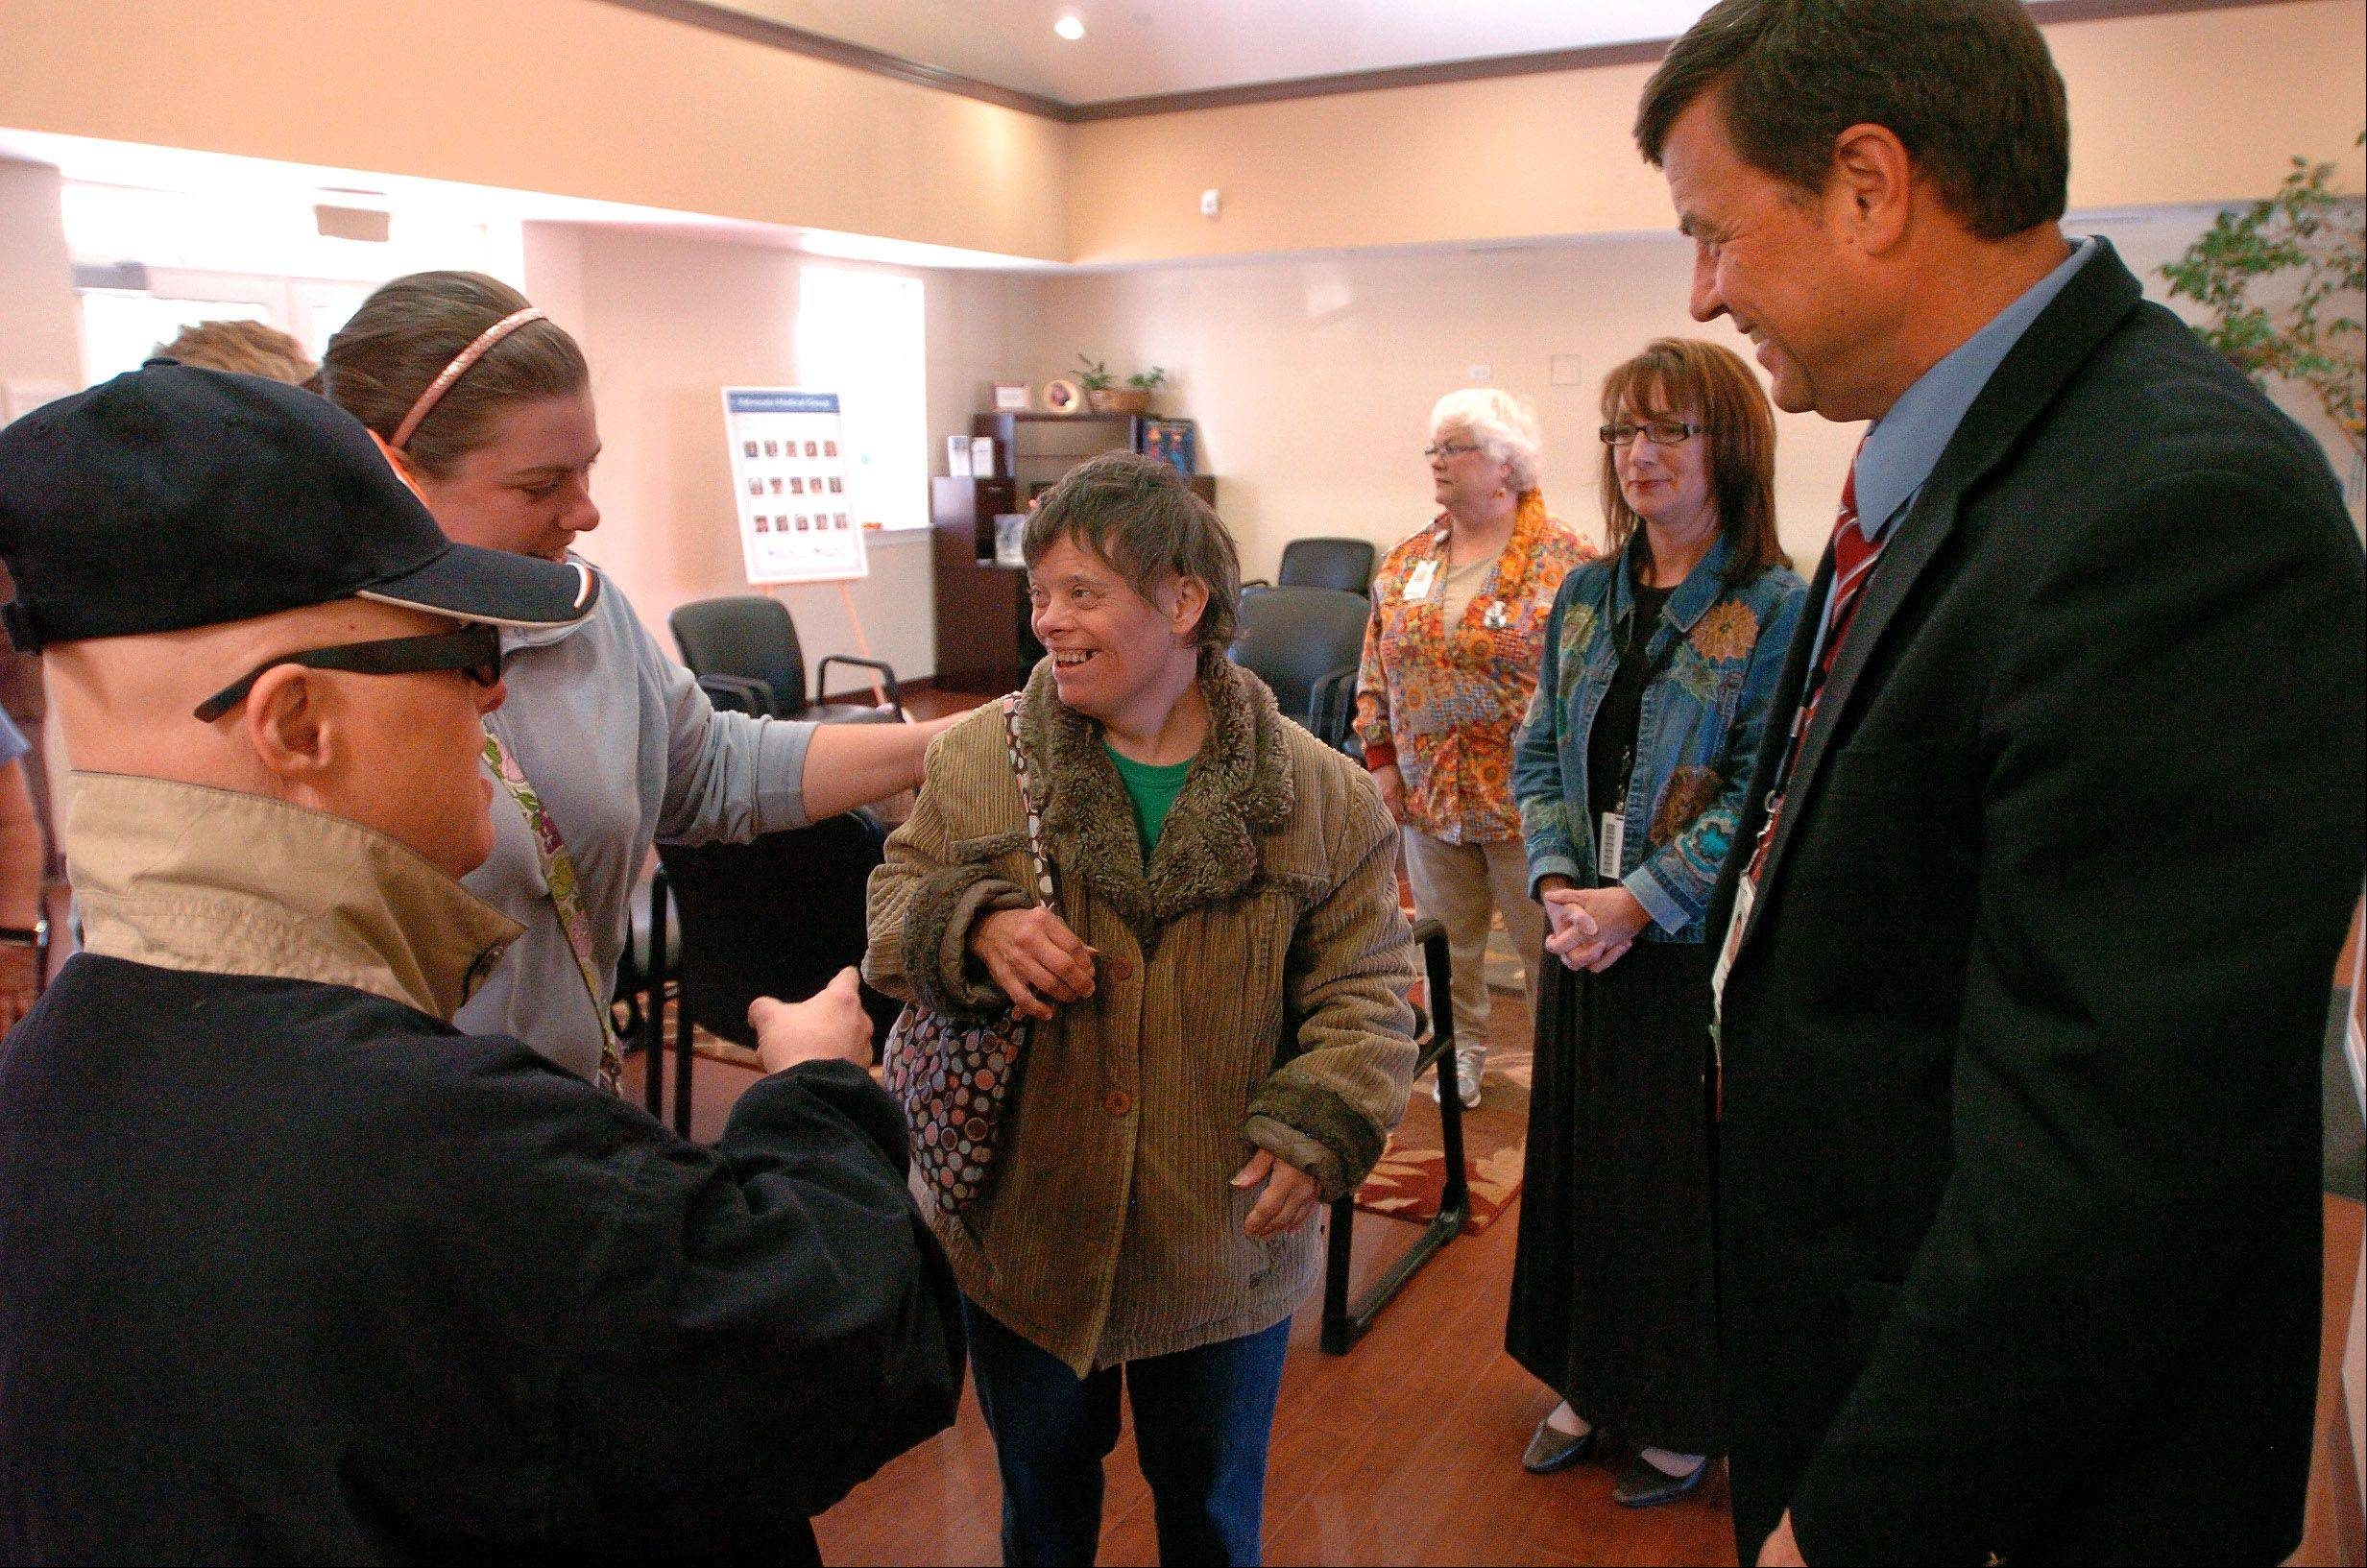 Dr. Brian Chicoine, Medical Director of Advocate Lutheran General Hospitals Adult Down Syndrome Center, right, greets patients Paul Franklin, left, and Jill Sowins, center, during the open house.